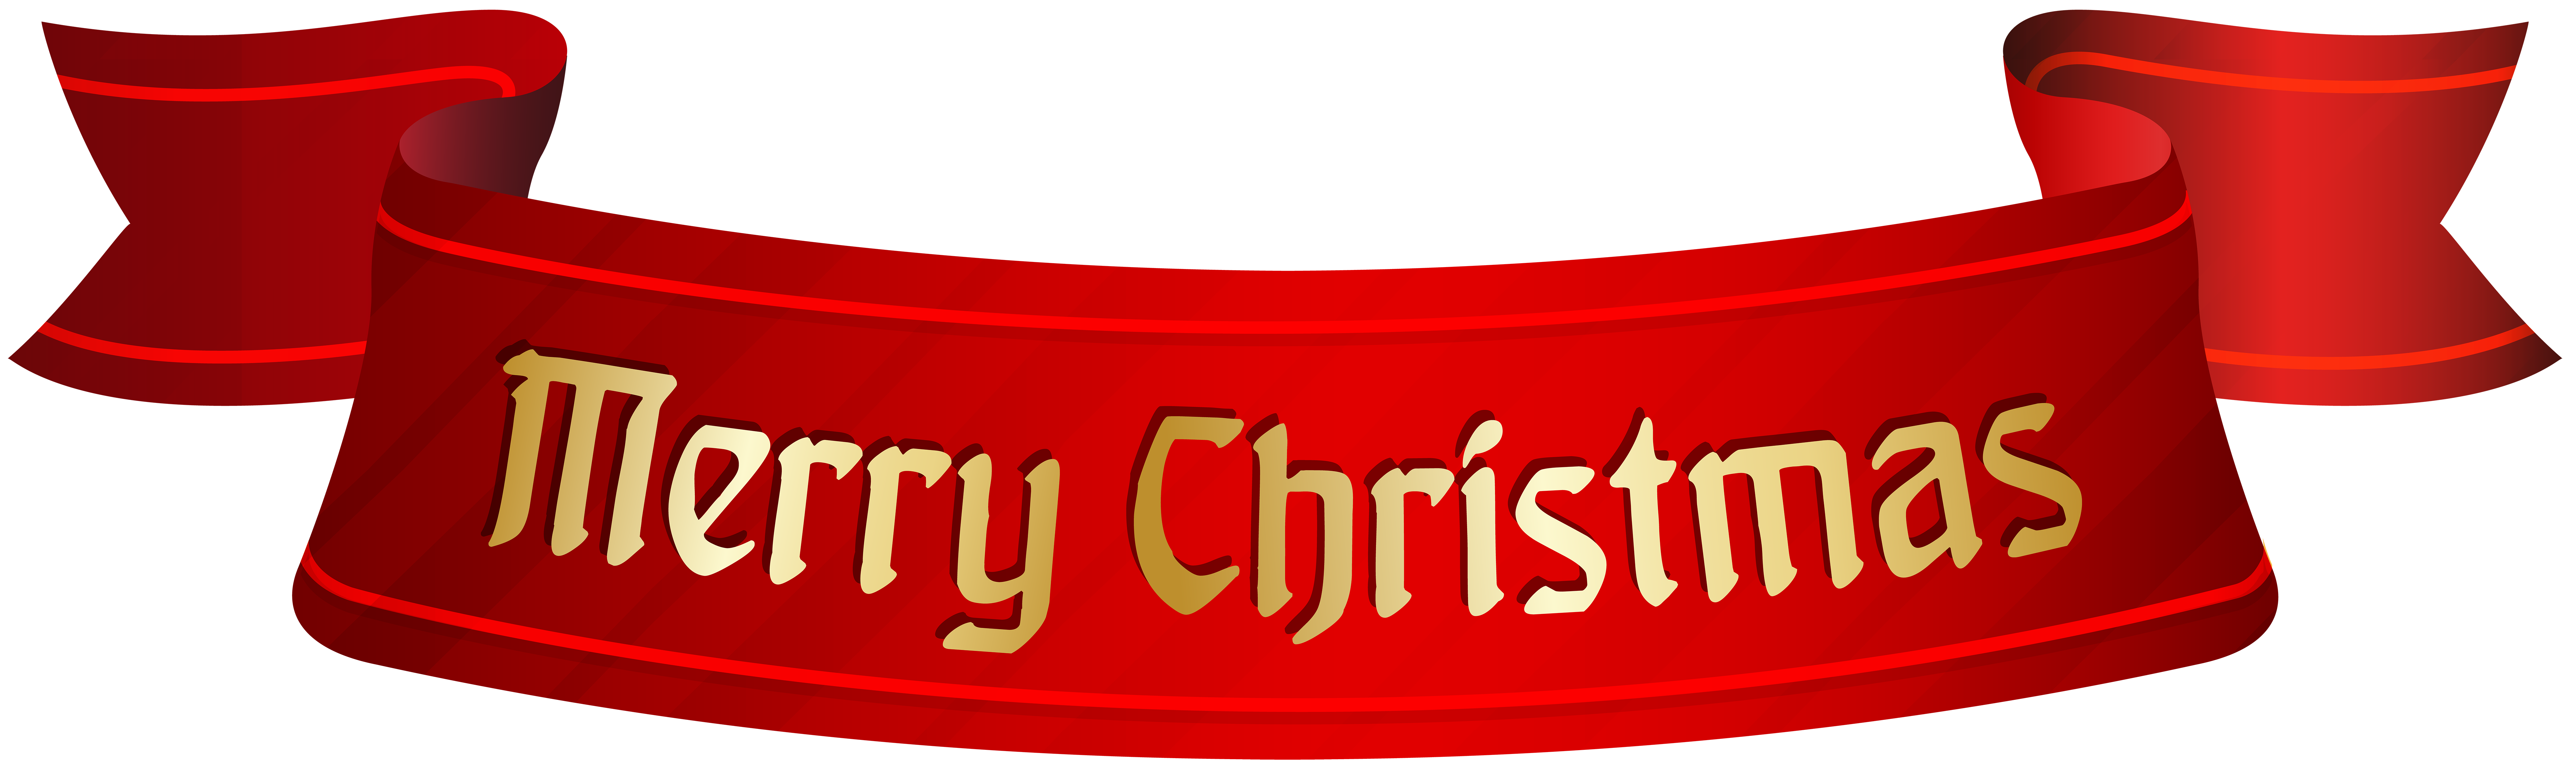 Merry christmas banner png. Clip art gallery yopriceville